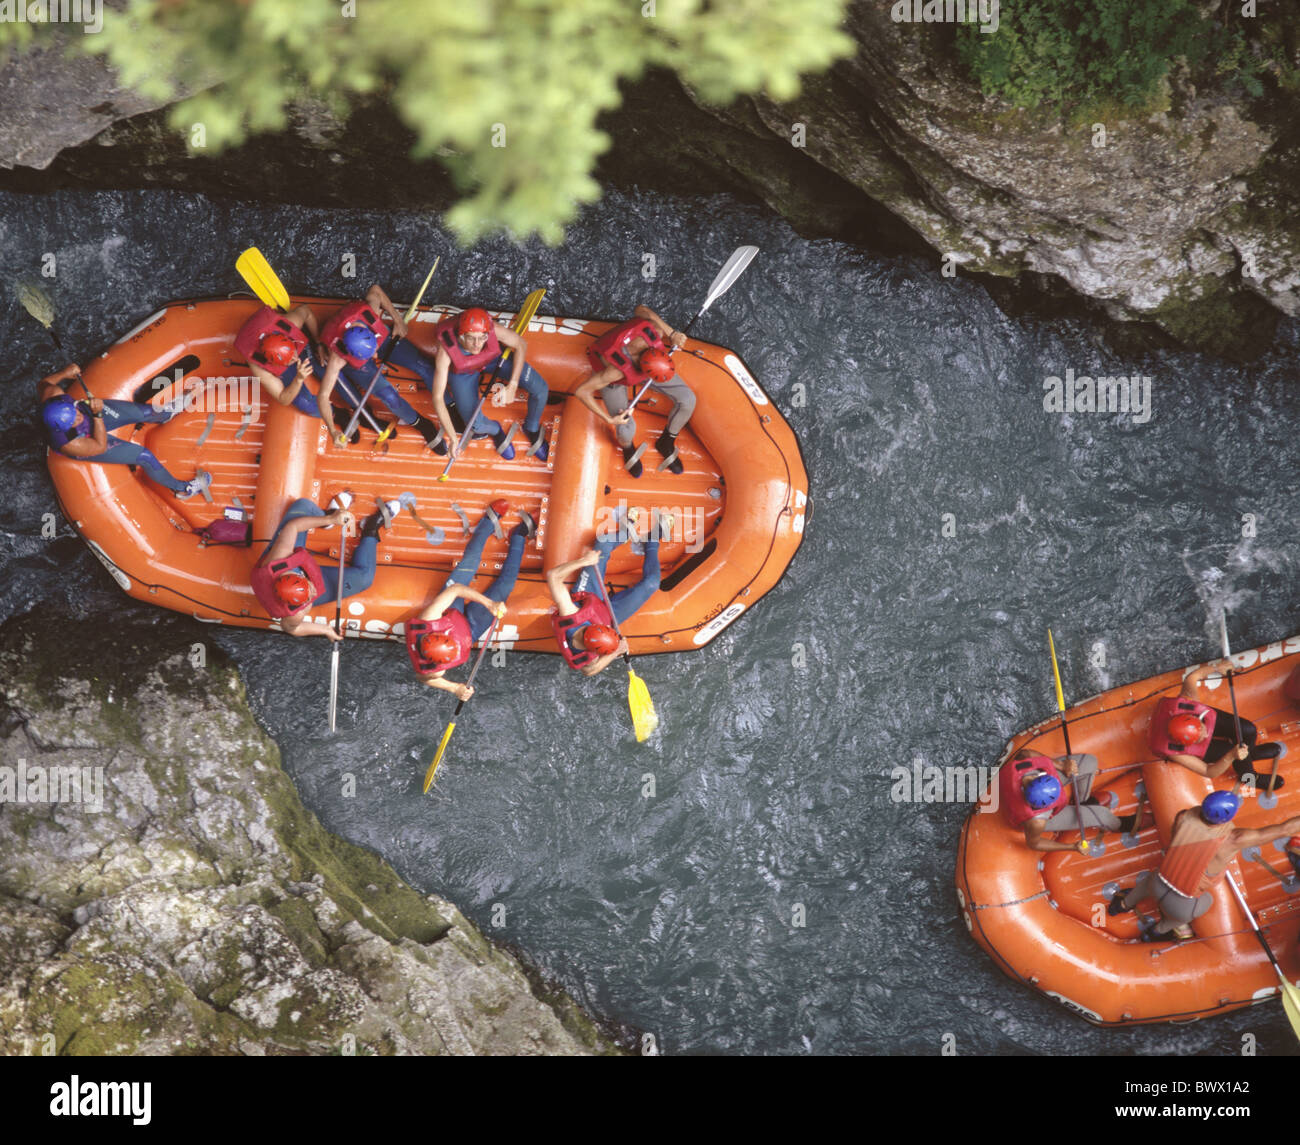 Rubber_dinghies Stock Photos & Rubber_dinghies Stock Images